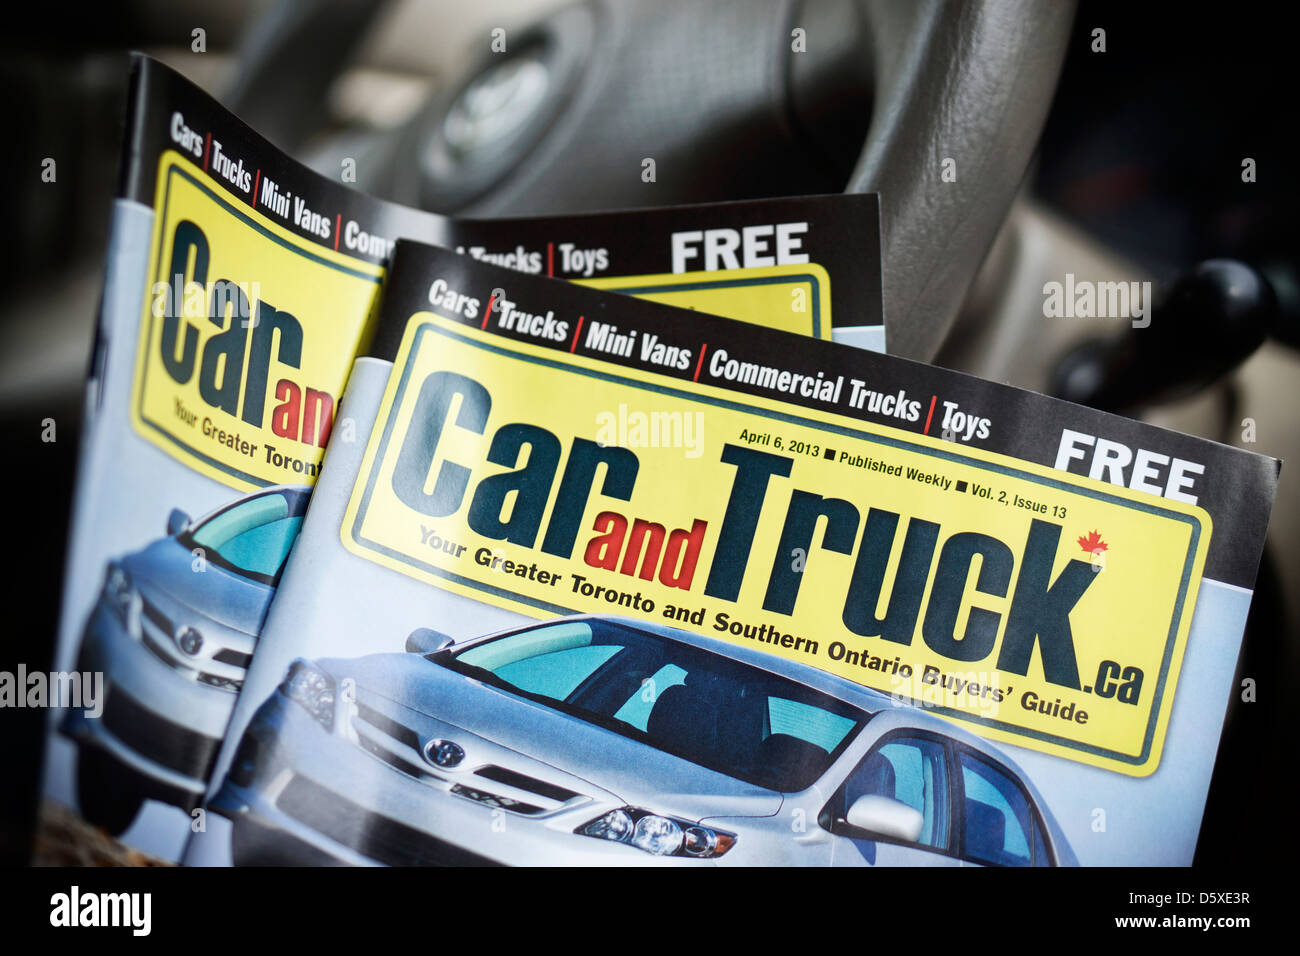 Car and Truck booklets, brochures, Ontario, Canada - Stock Image